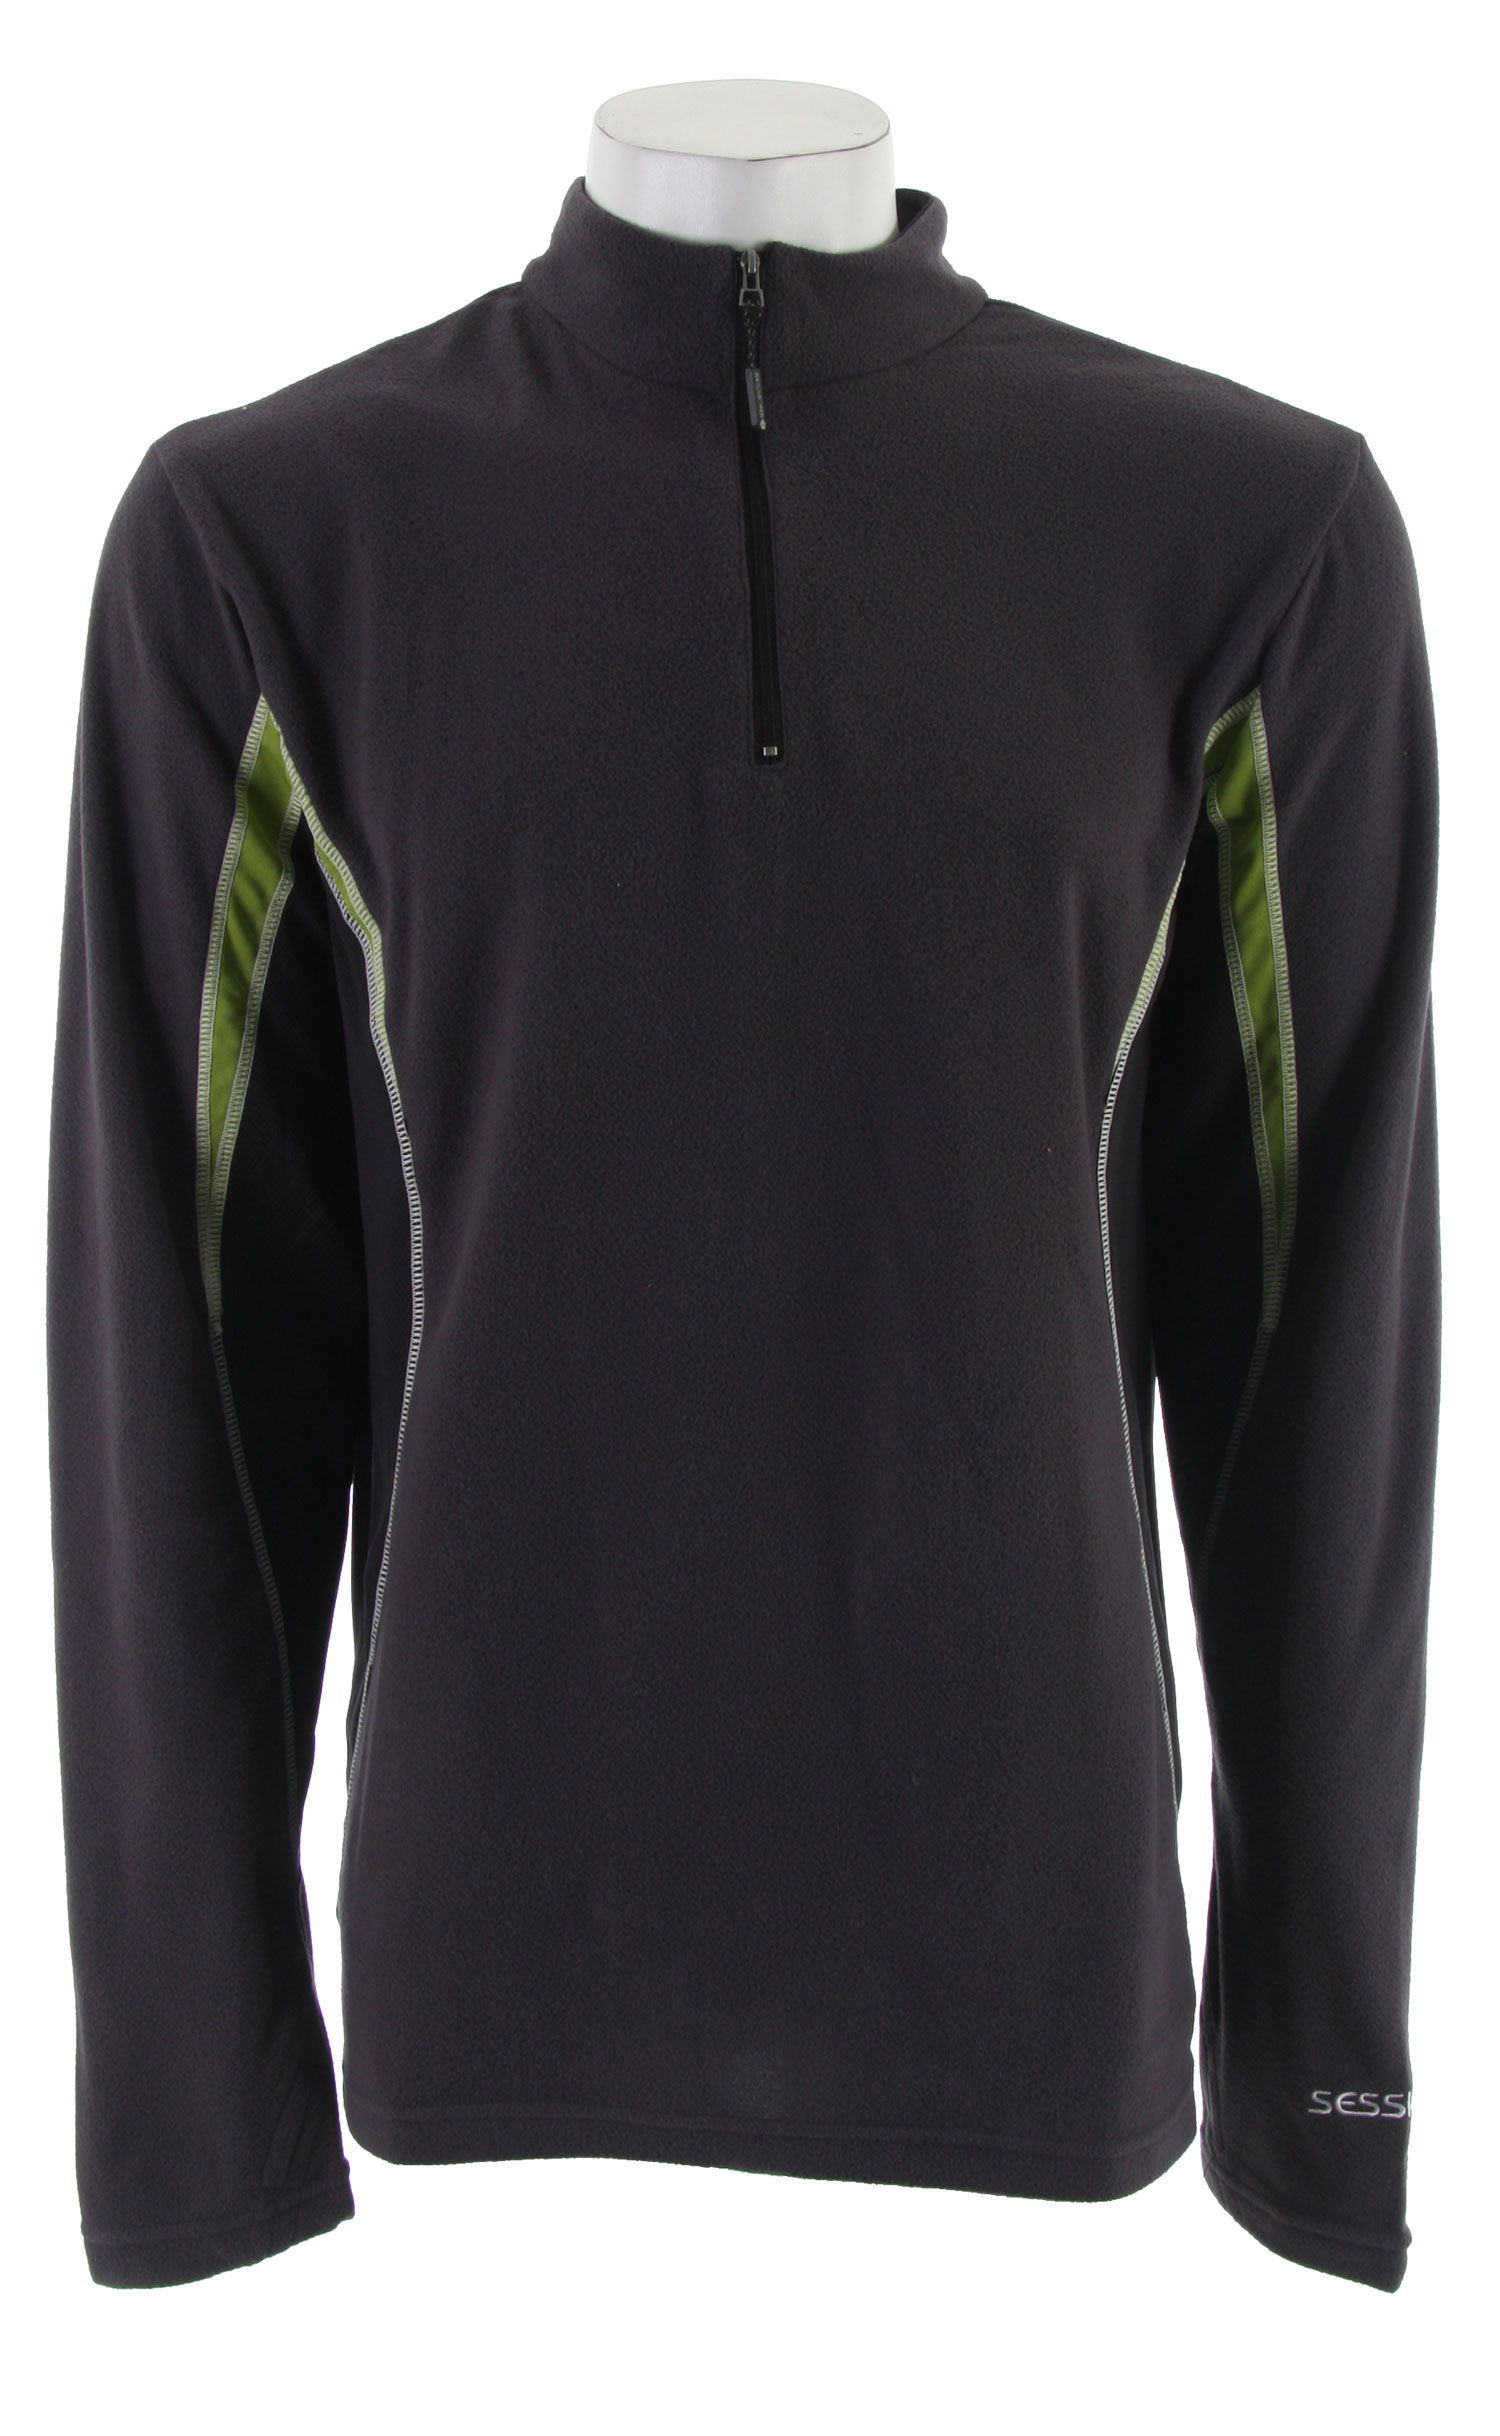 Key Features of the Sessions Thermatic 1/4 Zip Mock Shirt: Butter Fleece/li> - $33.56